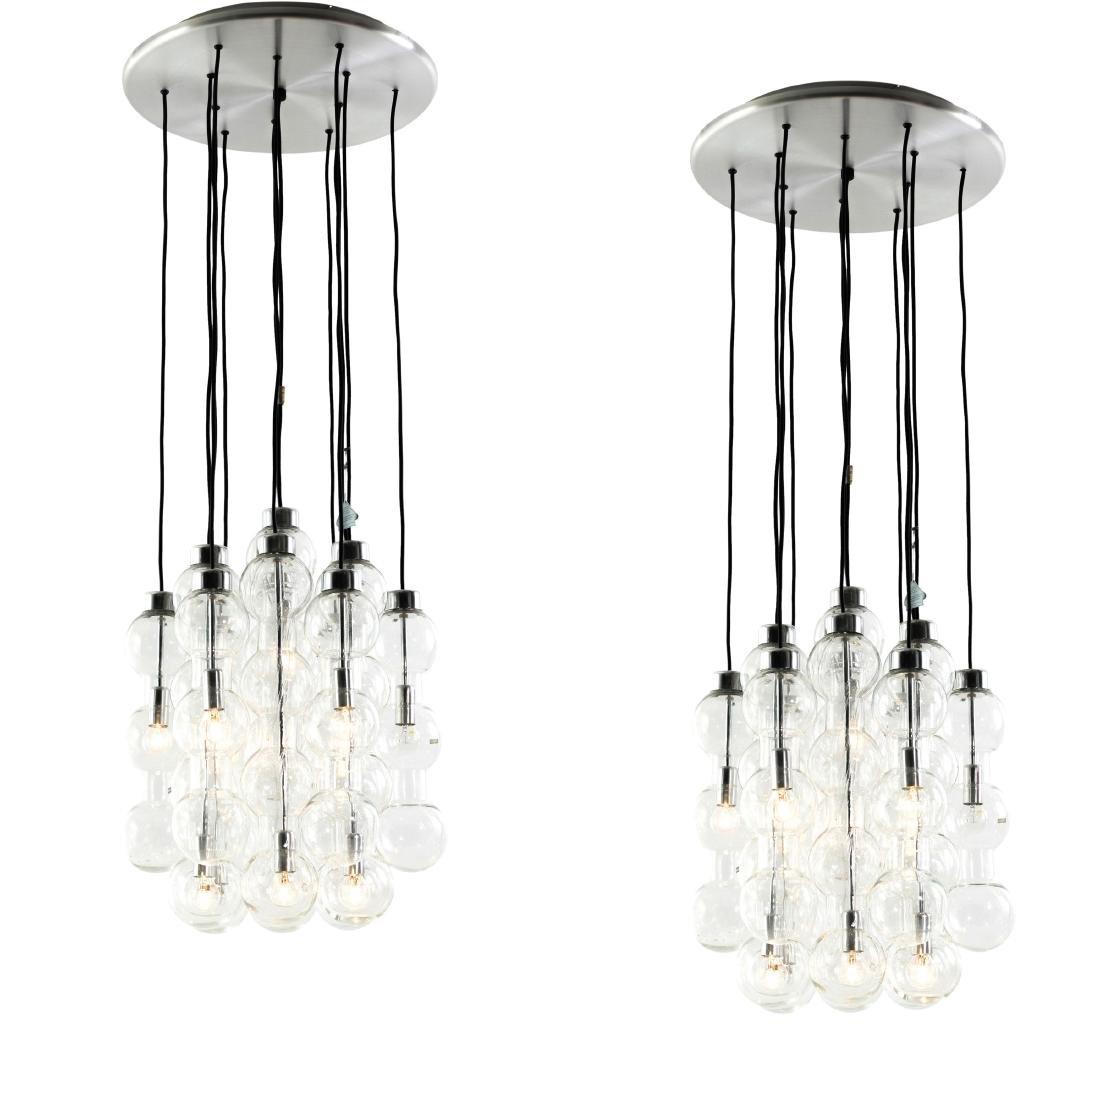 Two '4309' pendant lights, 1960s